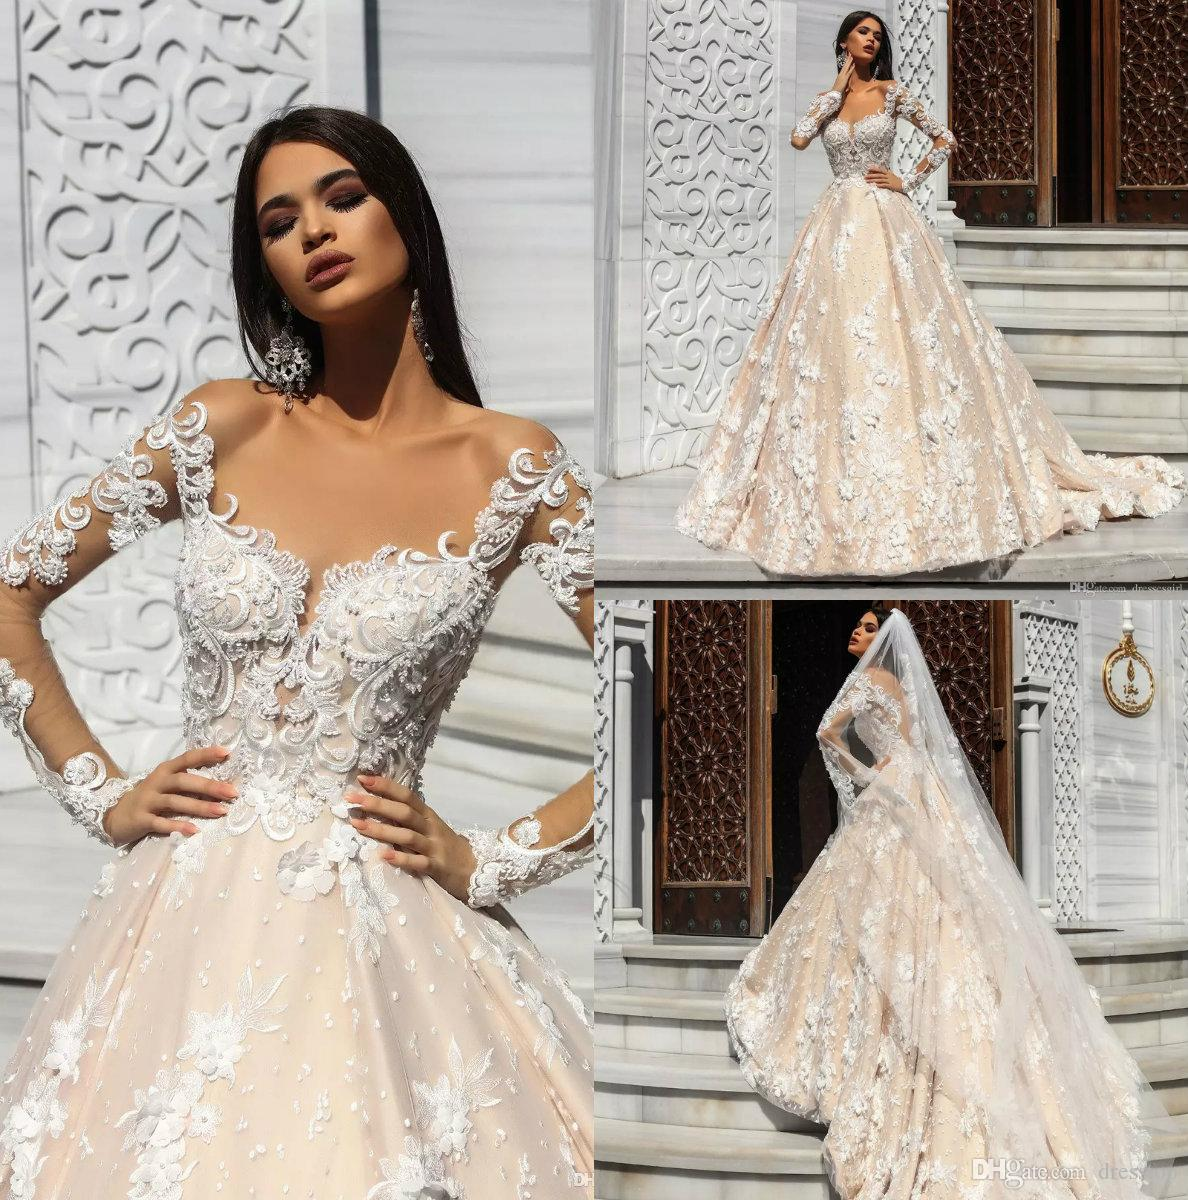 Princess Long Sleeve Champagne Wedding Dresses Church Lace Appliques Pearls Bridal  Gowns 2018 Illusion Plus Size Wedding Dress Bride Gowns Brides Dress From  ... b3fbbbe94817